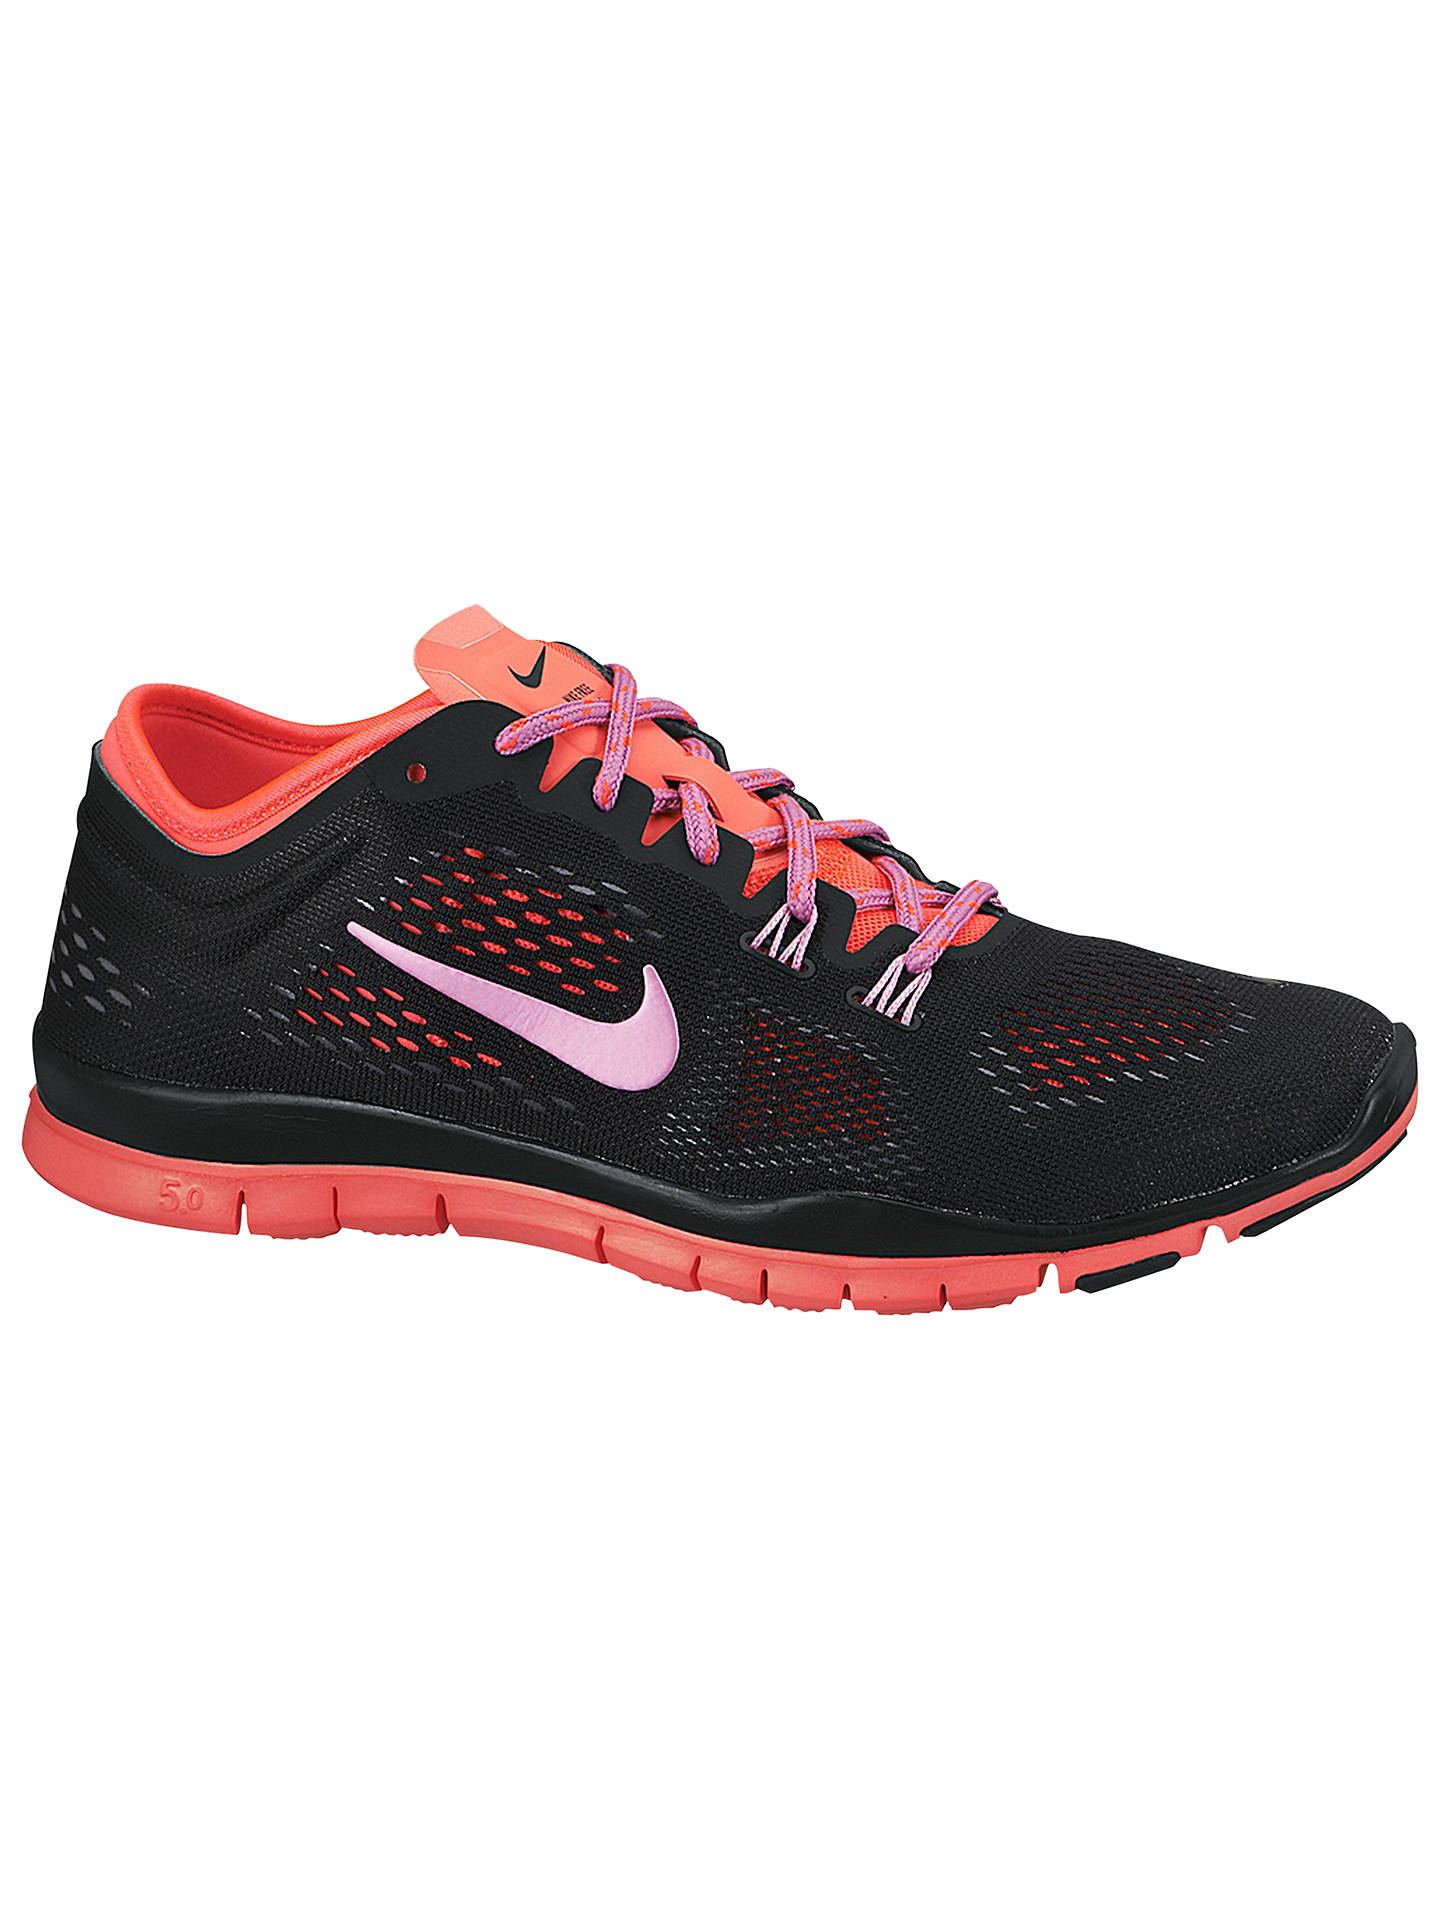 Nike Free 5.0 TR 4 Donna Cross Trainers, Hyper Nero Midnight Hyper Trainers,   fa1dbf